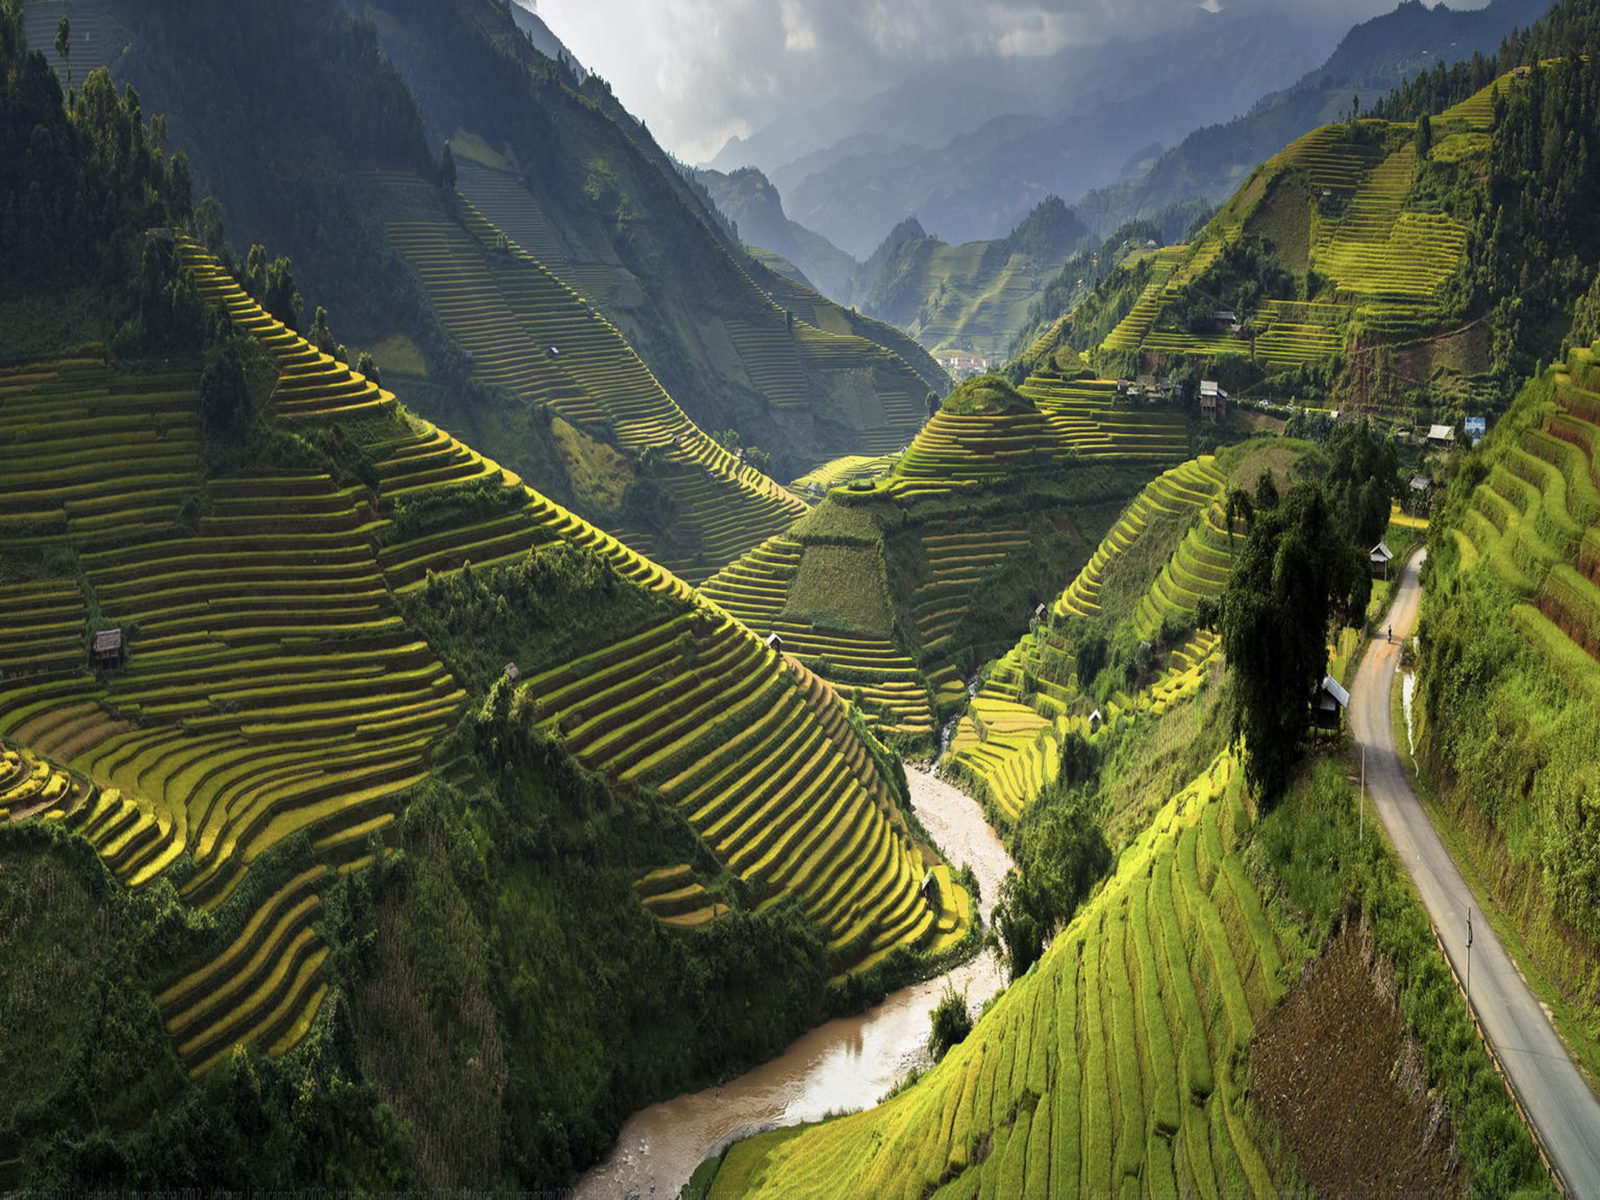 Iphone X Official Wallpaper Hd Landscape Terasasti Fields With Rice Mu Cang Chai District